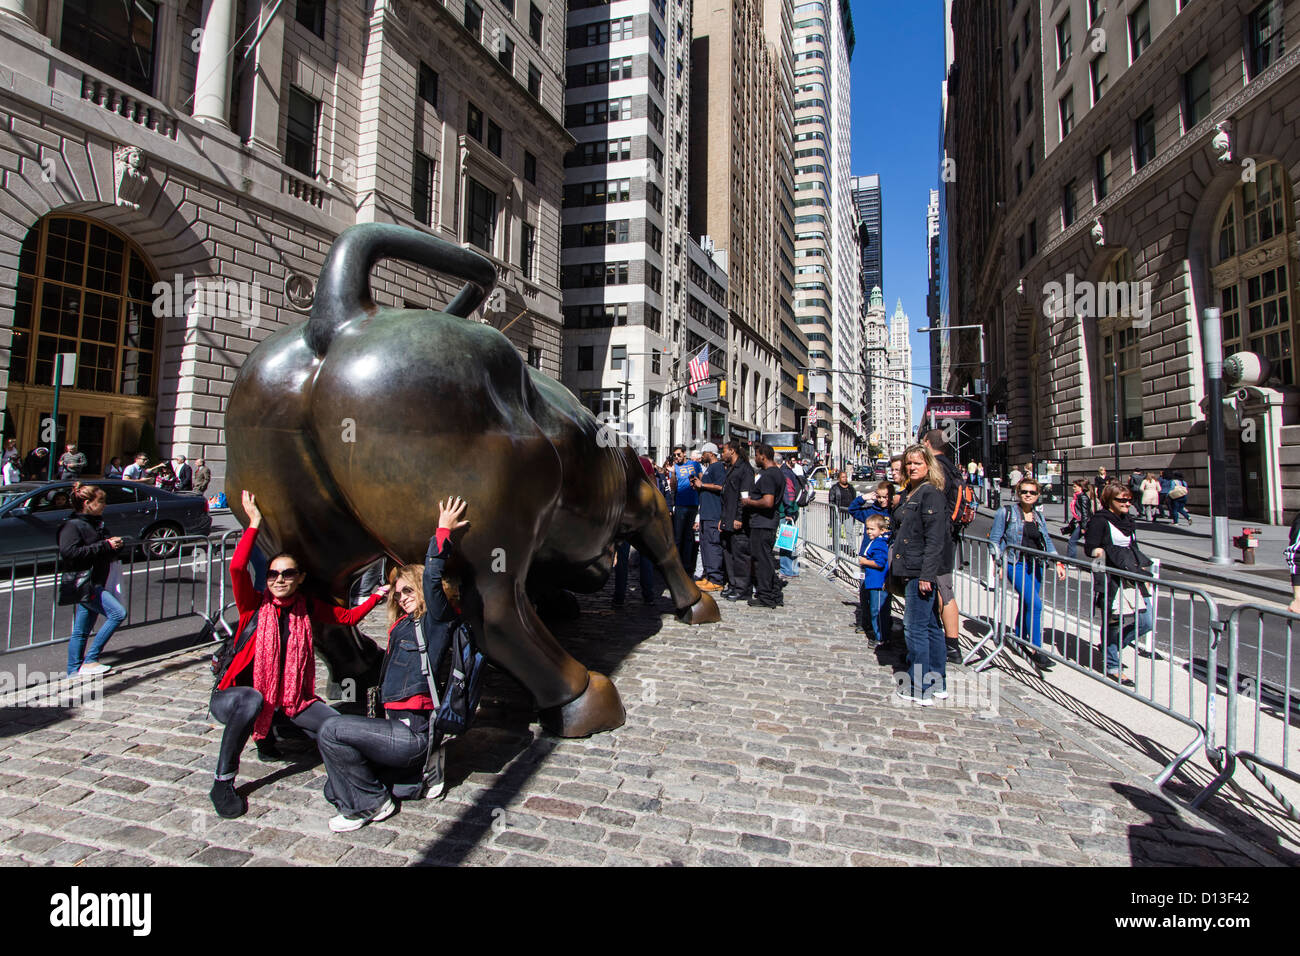 Tourists at The bull of Wall Street, Financial district, New York Stock Photo 52323490 Alamy